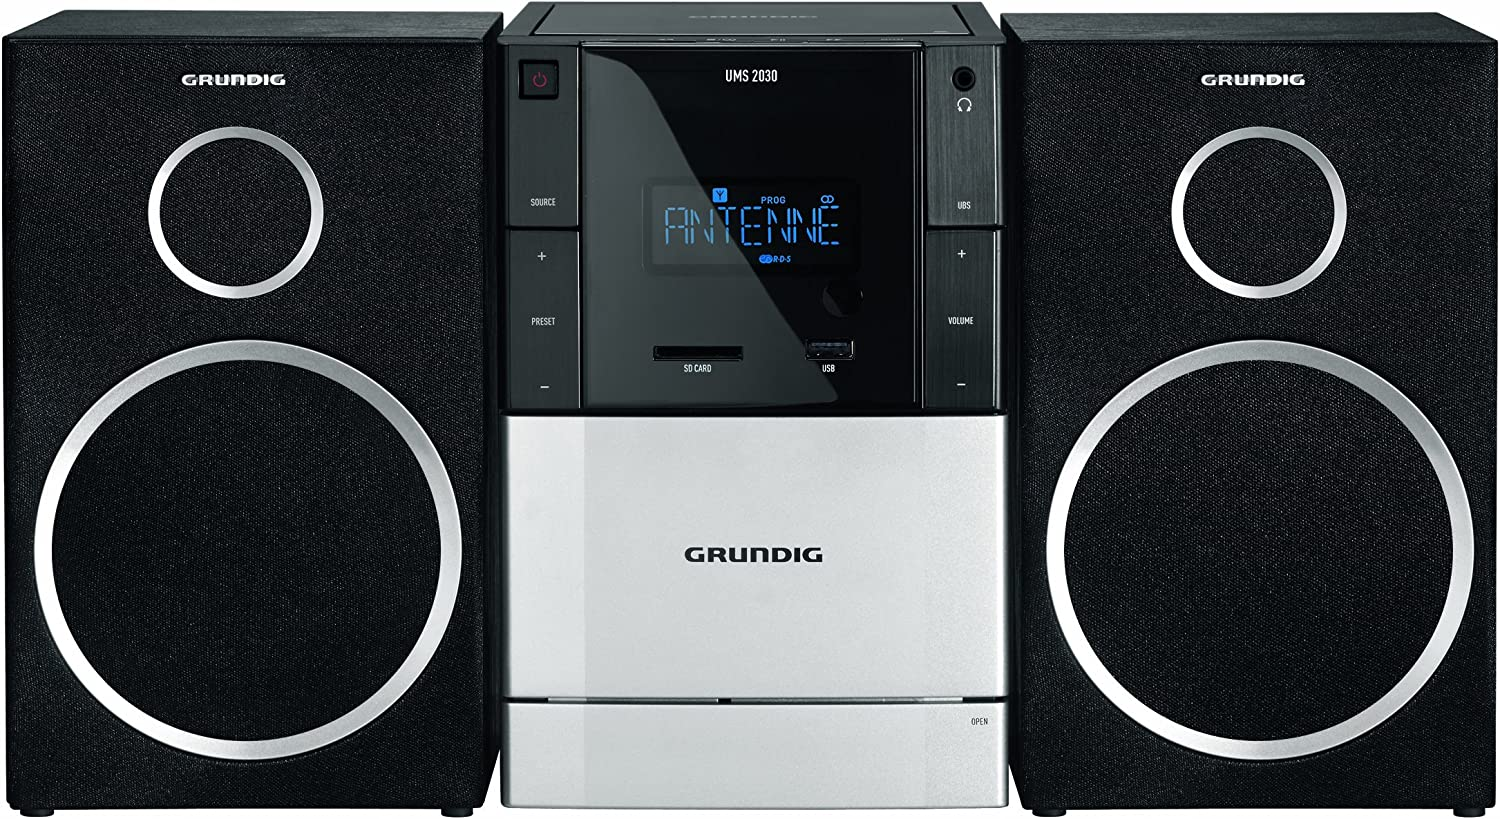 Grundig Ums 2030 Micro Stereo System Cd Player Rds Aux In Usb Home Cinema Tv Video